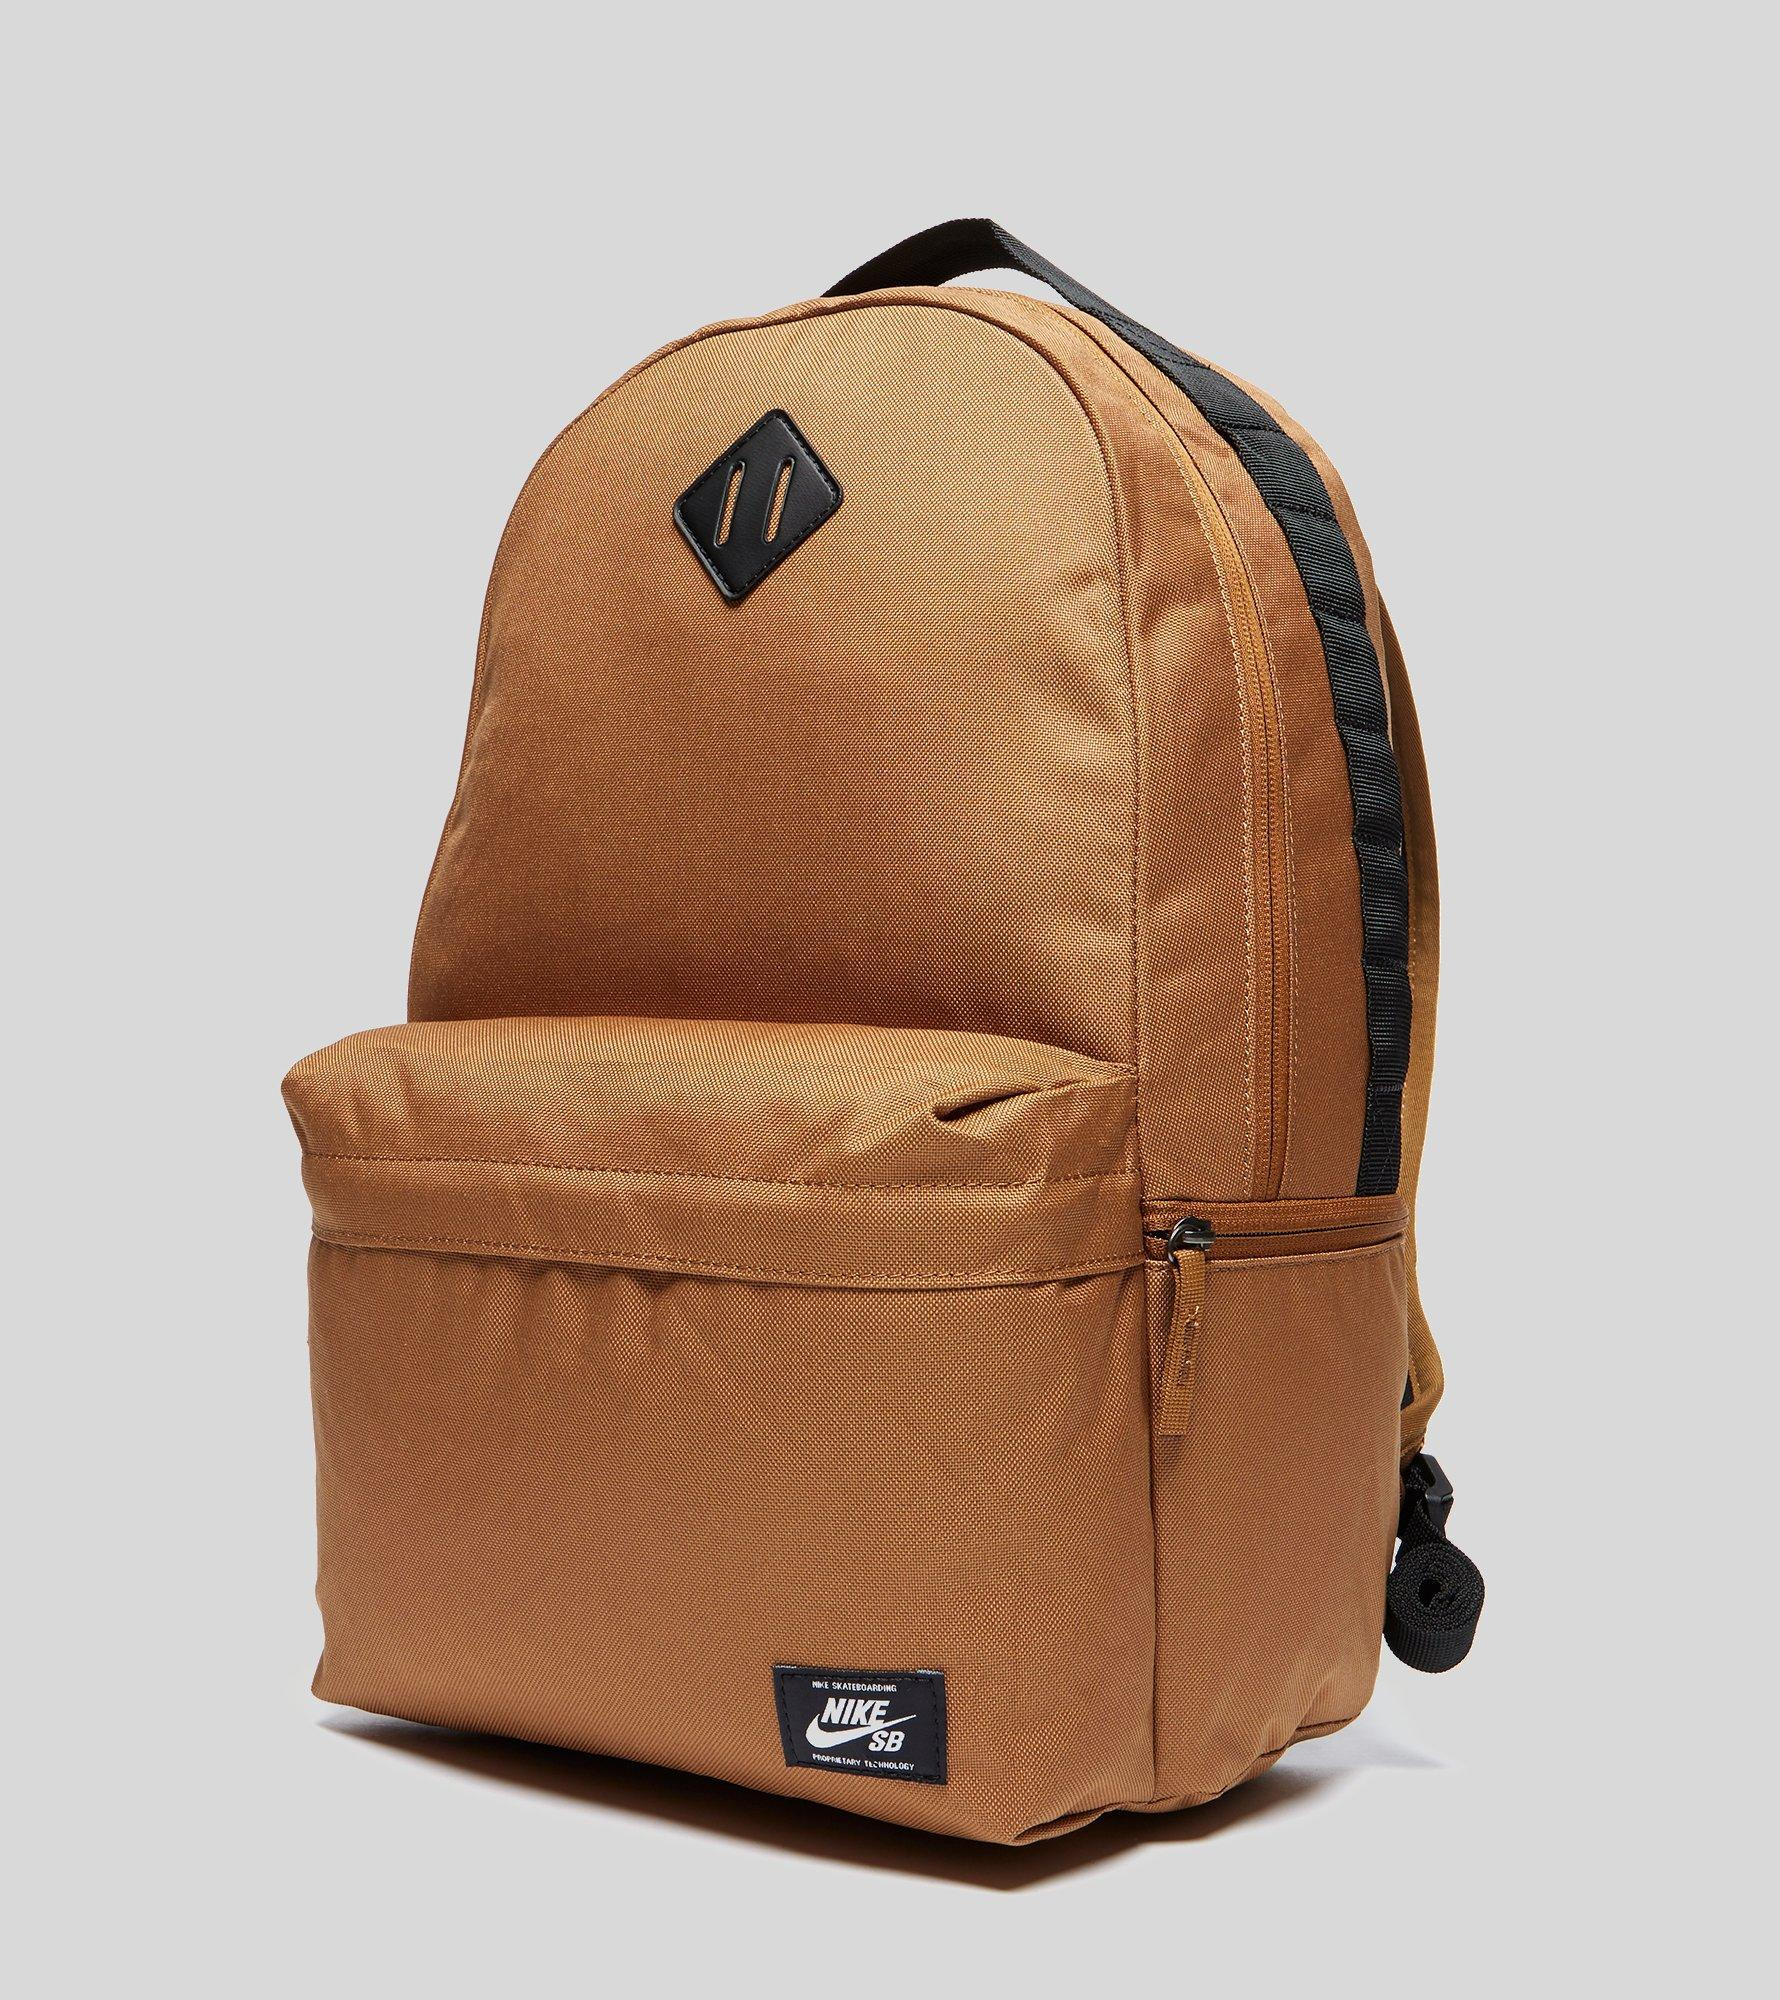 9956c008a78c Lyst - Nike Sb Icon Backpack in Brown for Men